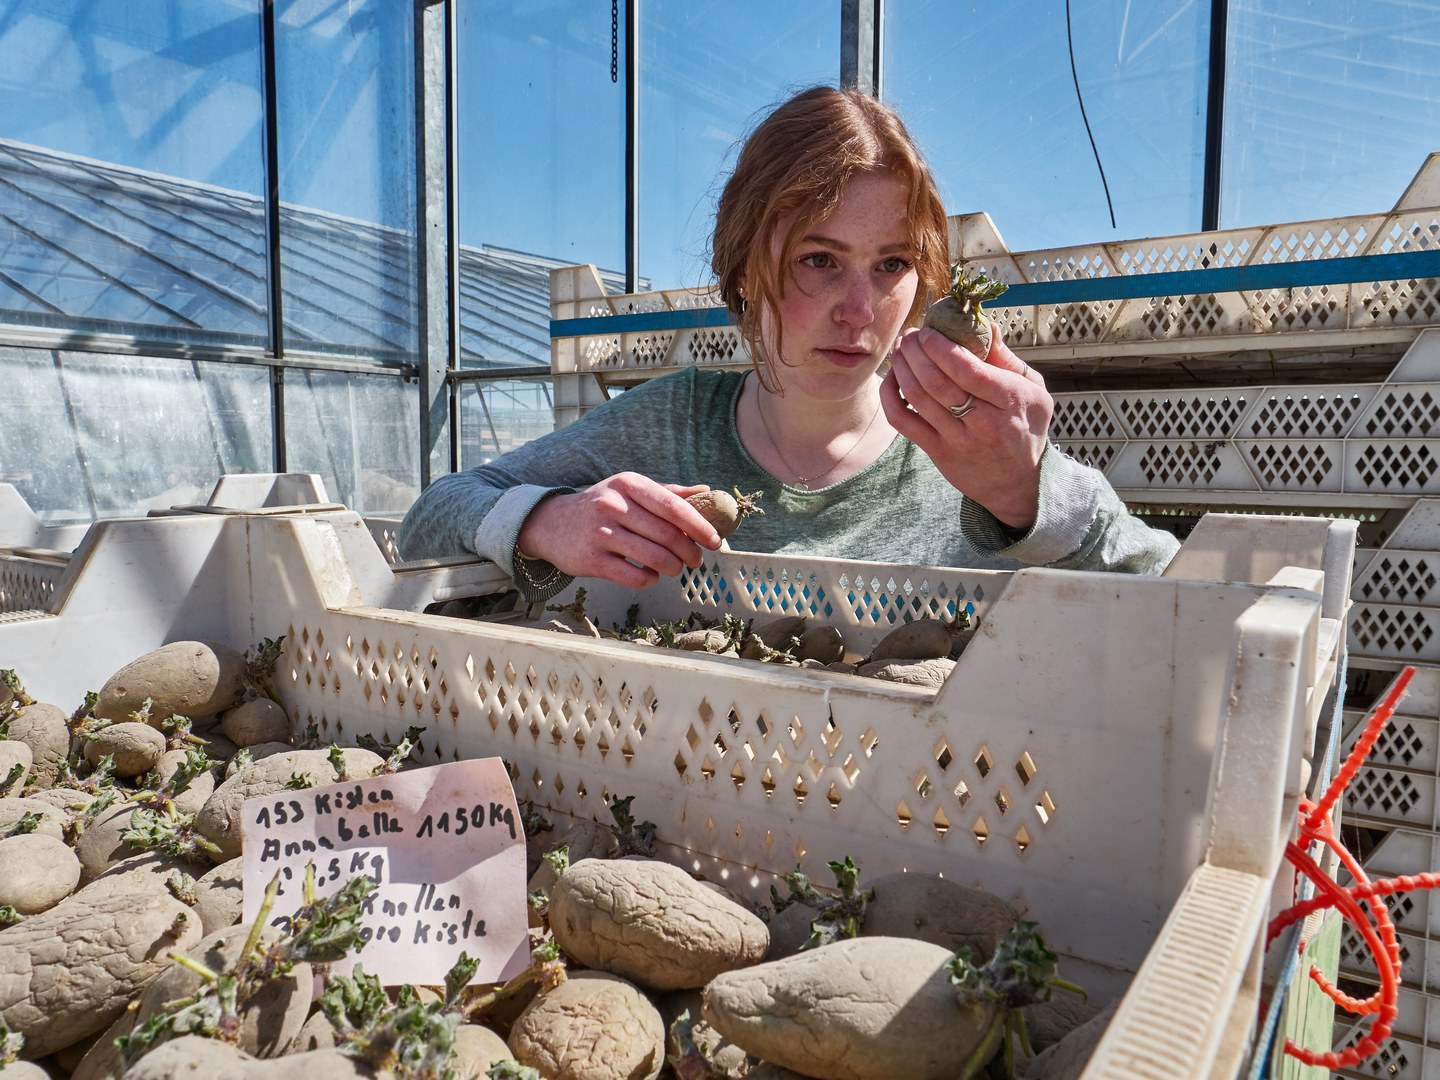 Lea Kamps checks whether the potatoes have sprouted enough before they are planted.